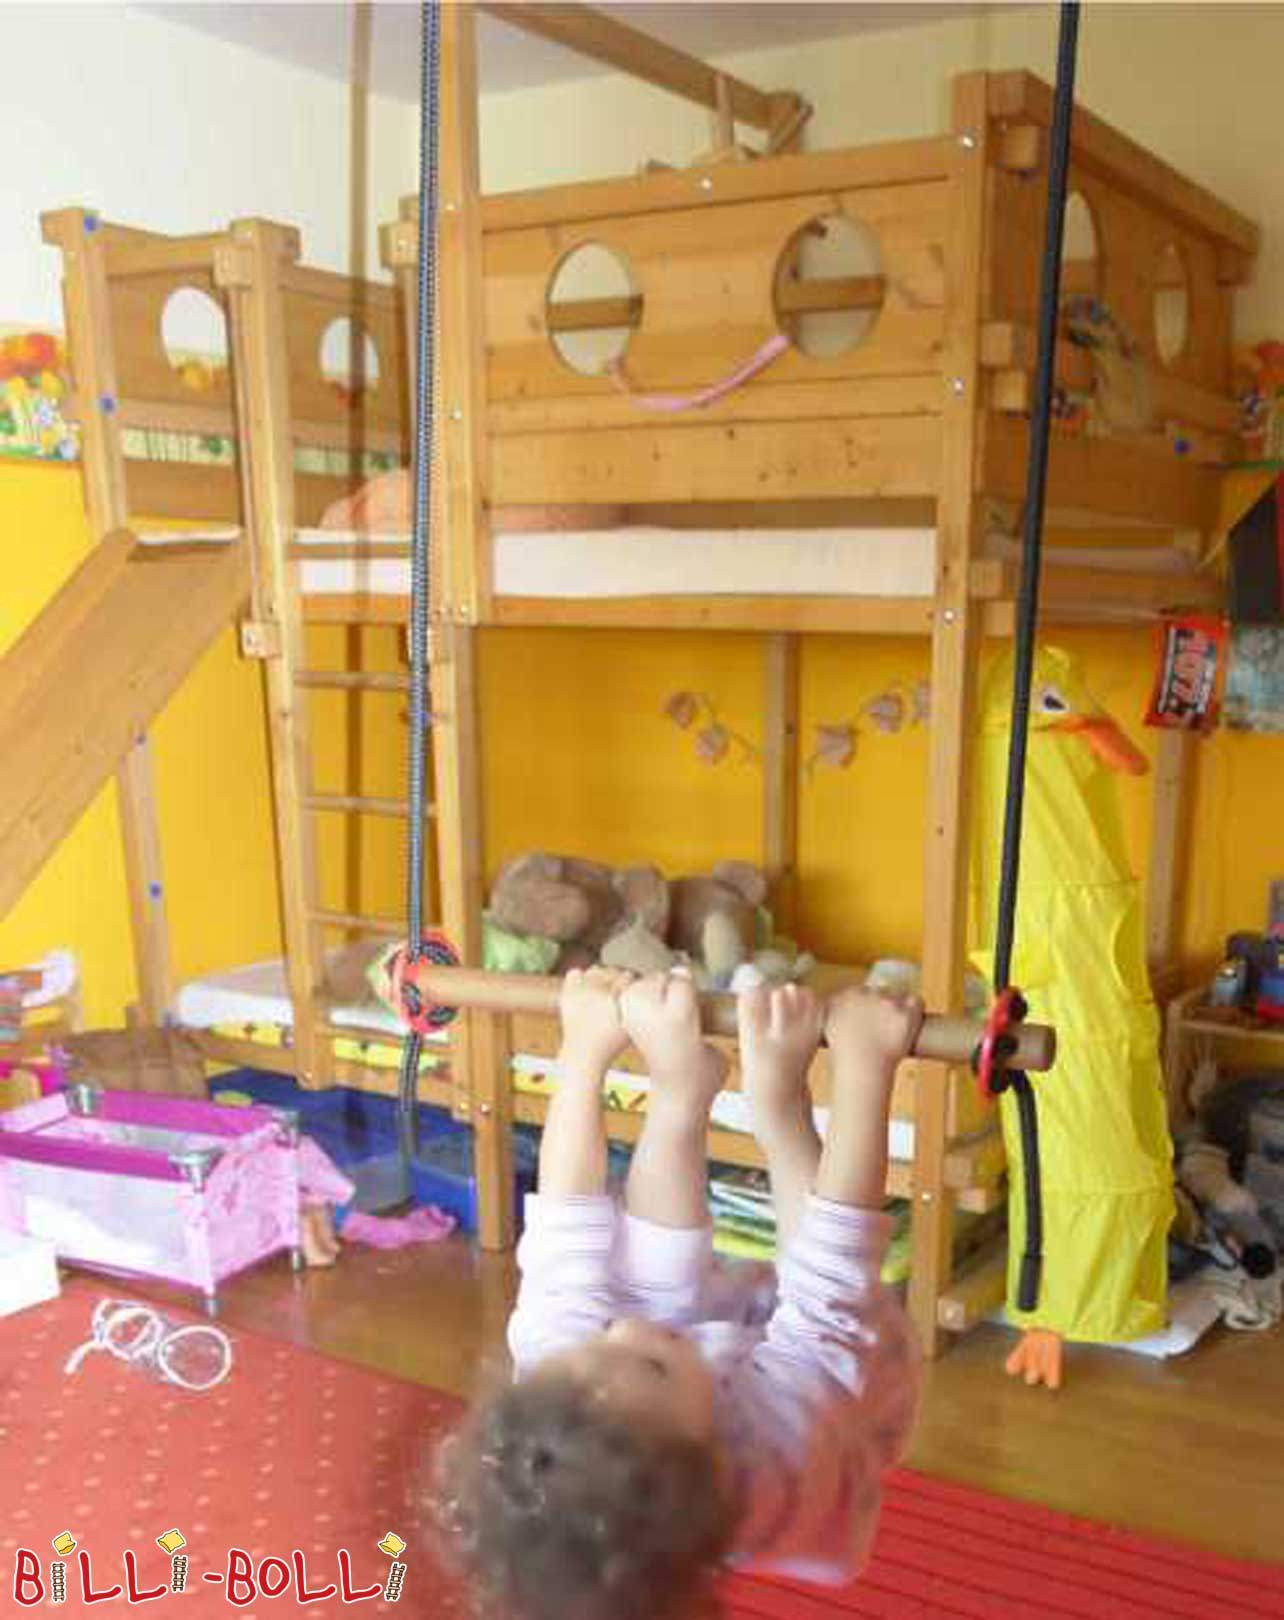 Che-Bolli pirate bed (high bed) (second hand loft bed)